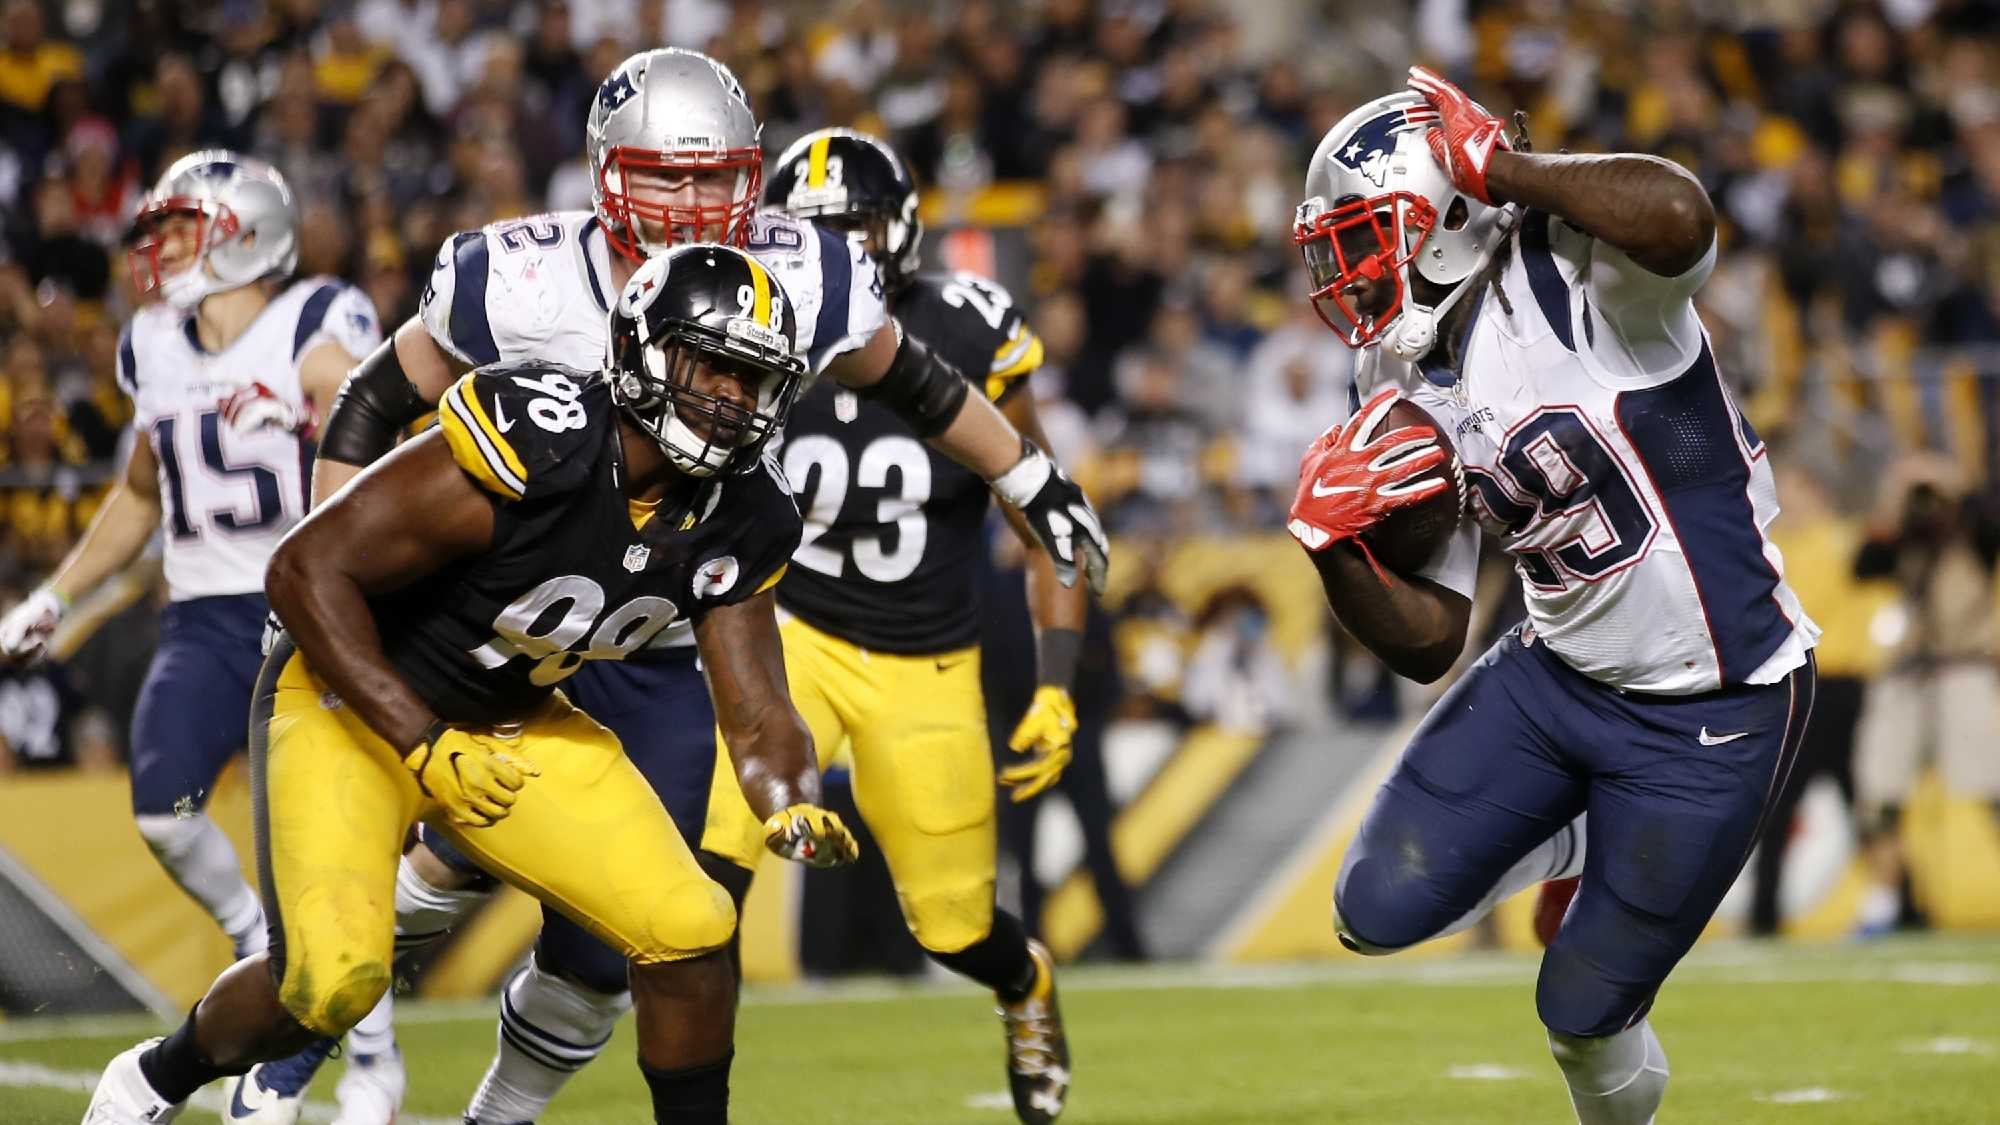 New England Patriots running back LeGarrette Blount (29) gets into the end zone for a touchdown past Pittsburgh Steelers inside linebacker Vince Williams (98) during the second half of an NFL football game in Pittsburgh, Sunday, Oct. 23, 2016.